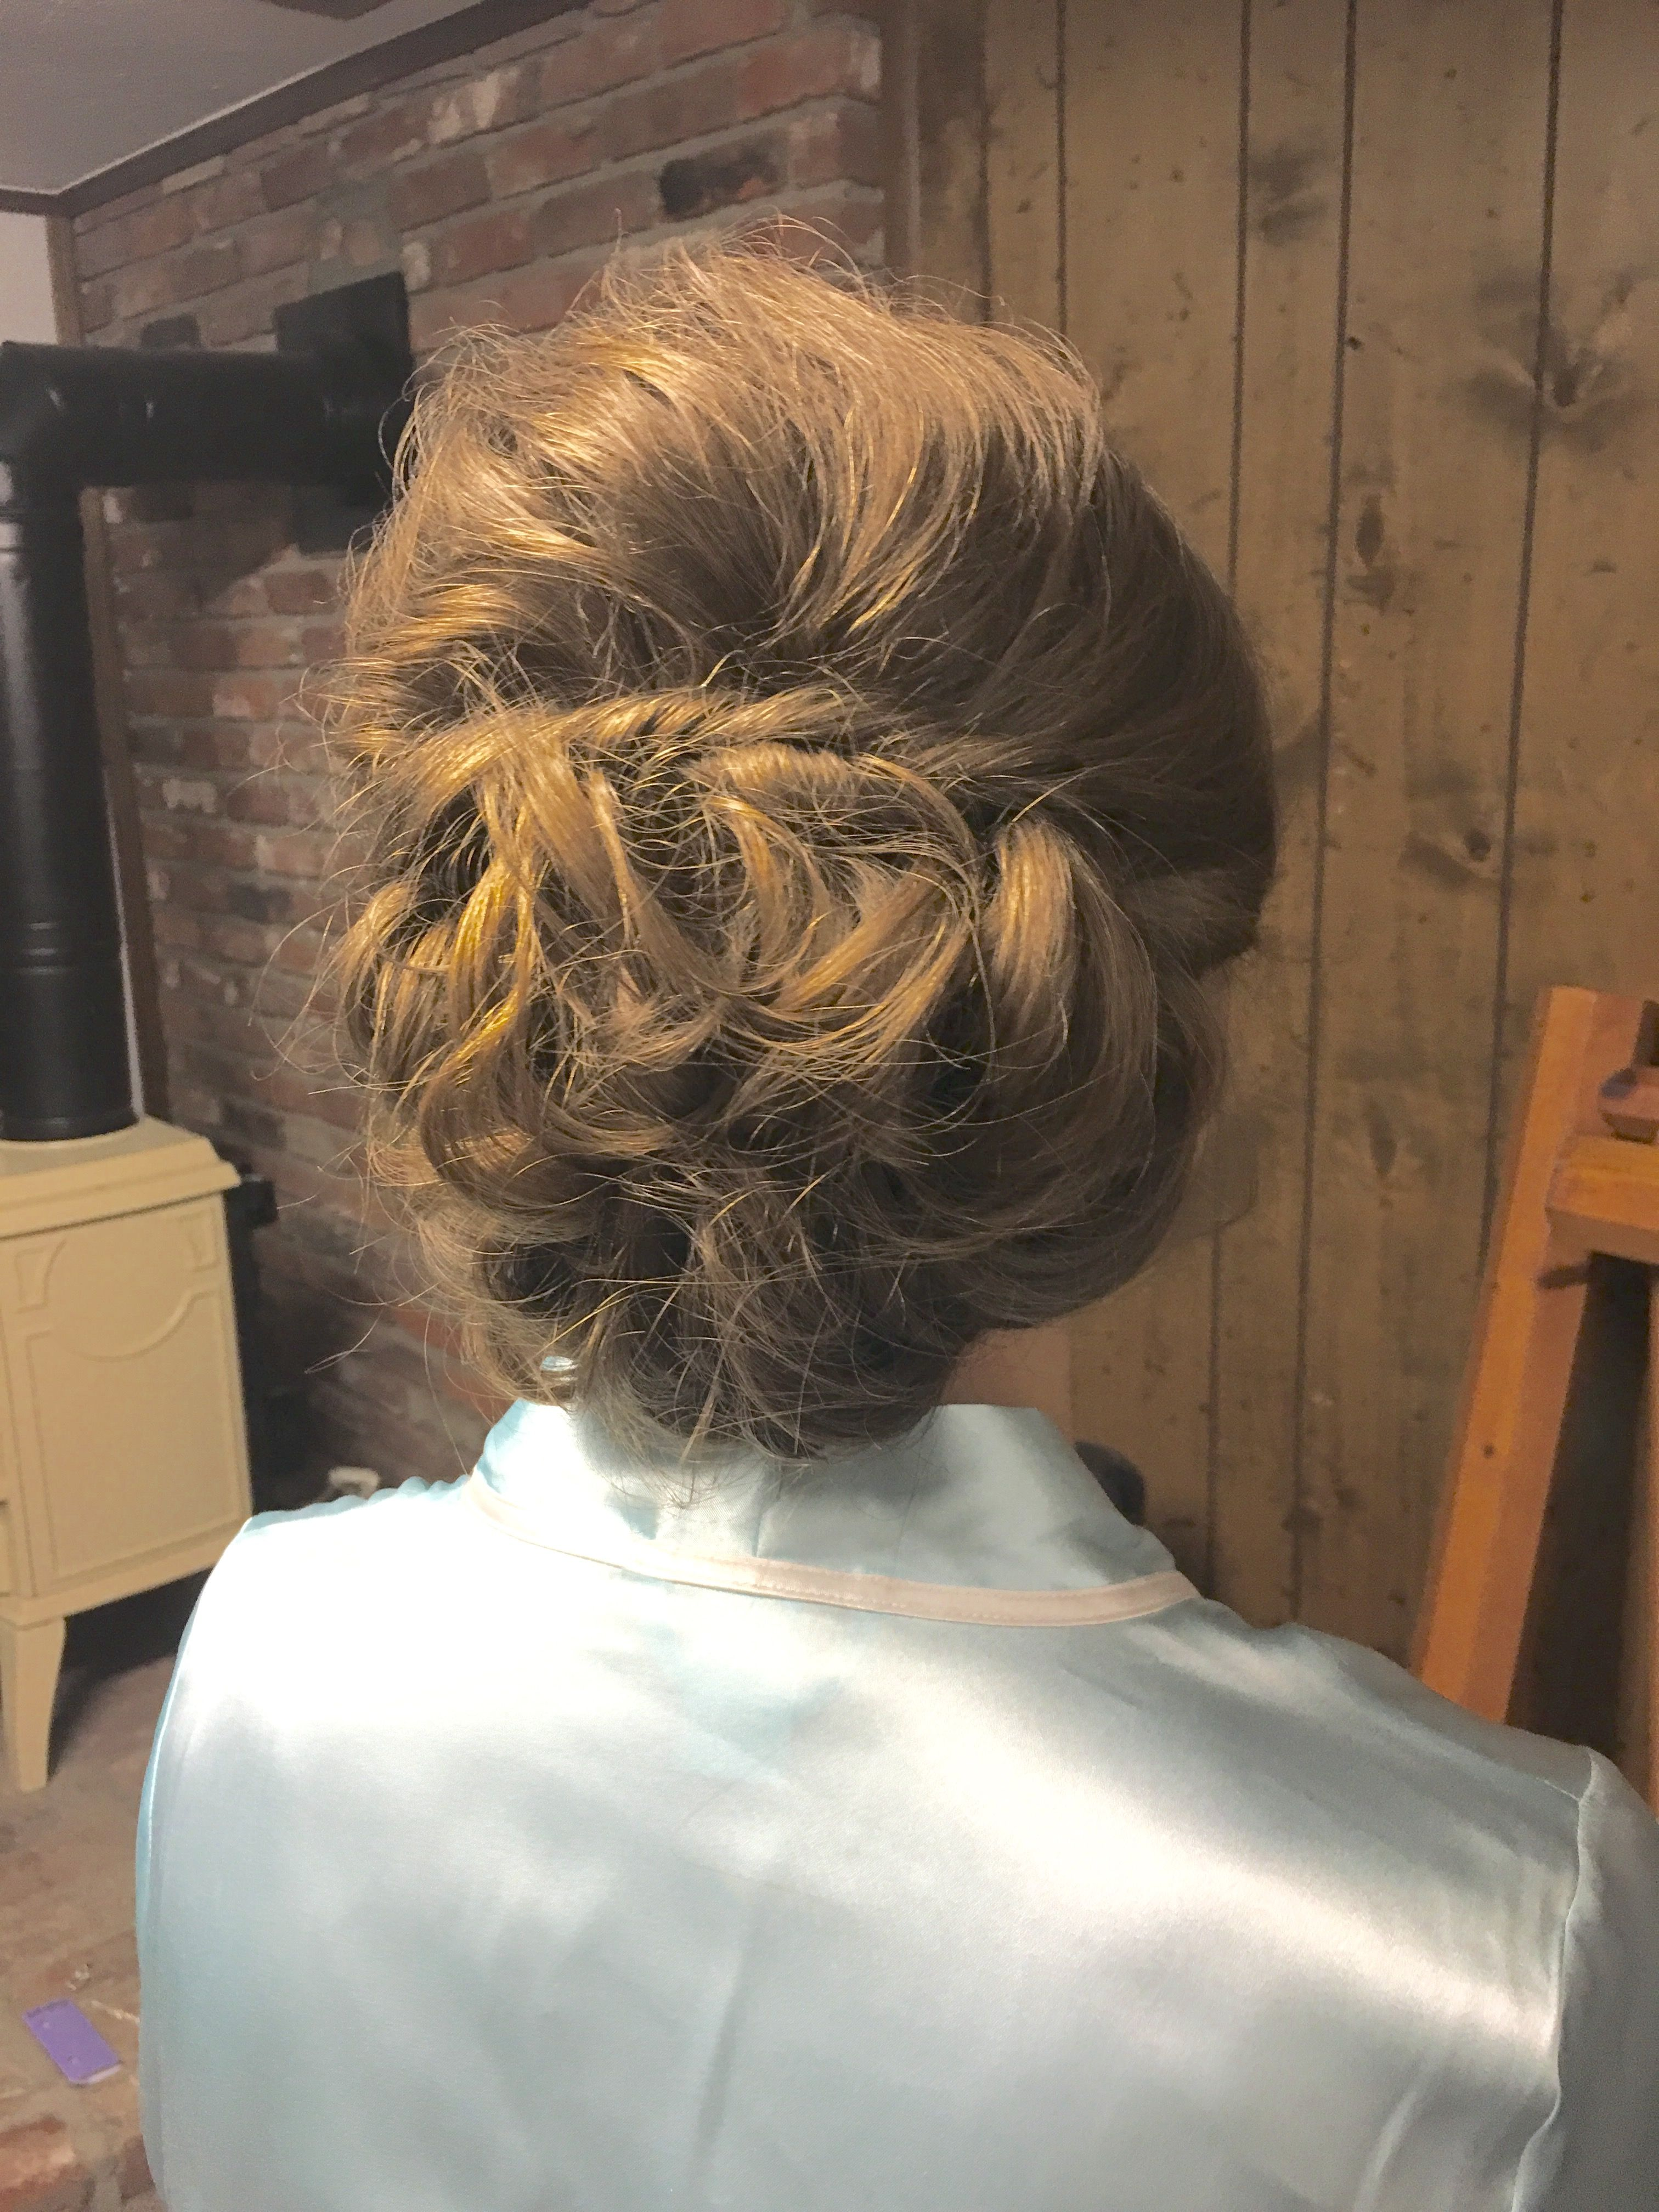 Pin by Sydney Williams on !!!Formal Hair by Sydney!!! | Formal hairstyles, Hair, Beauty